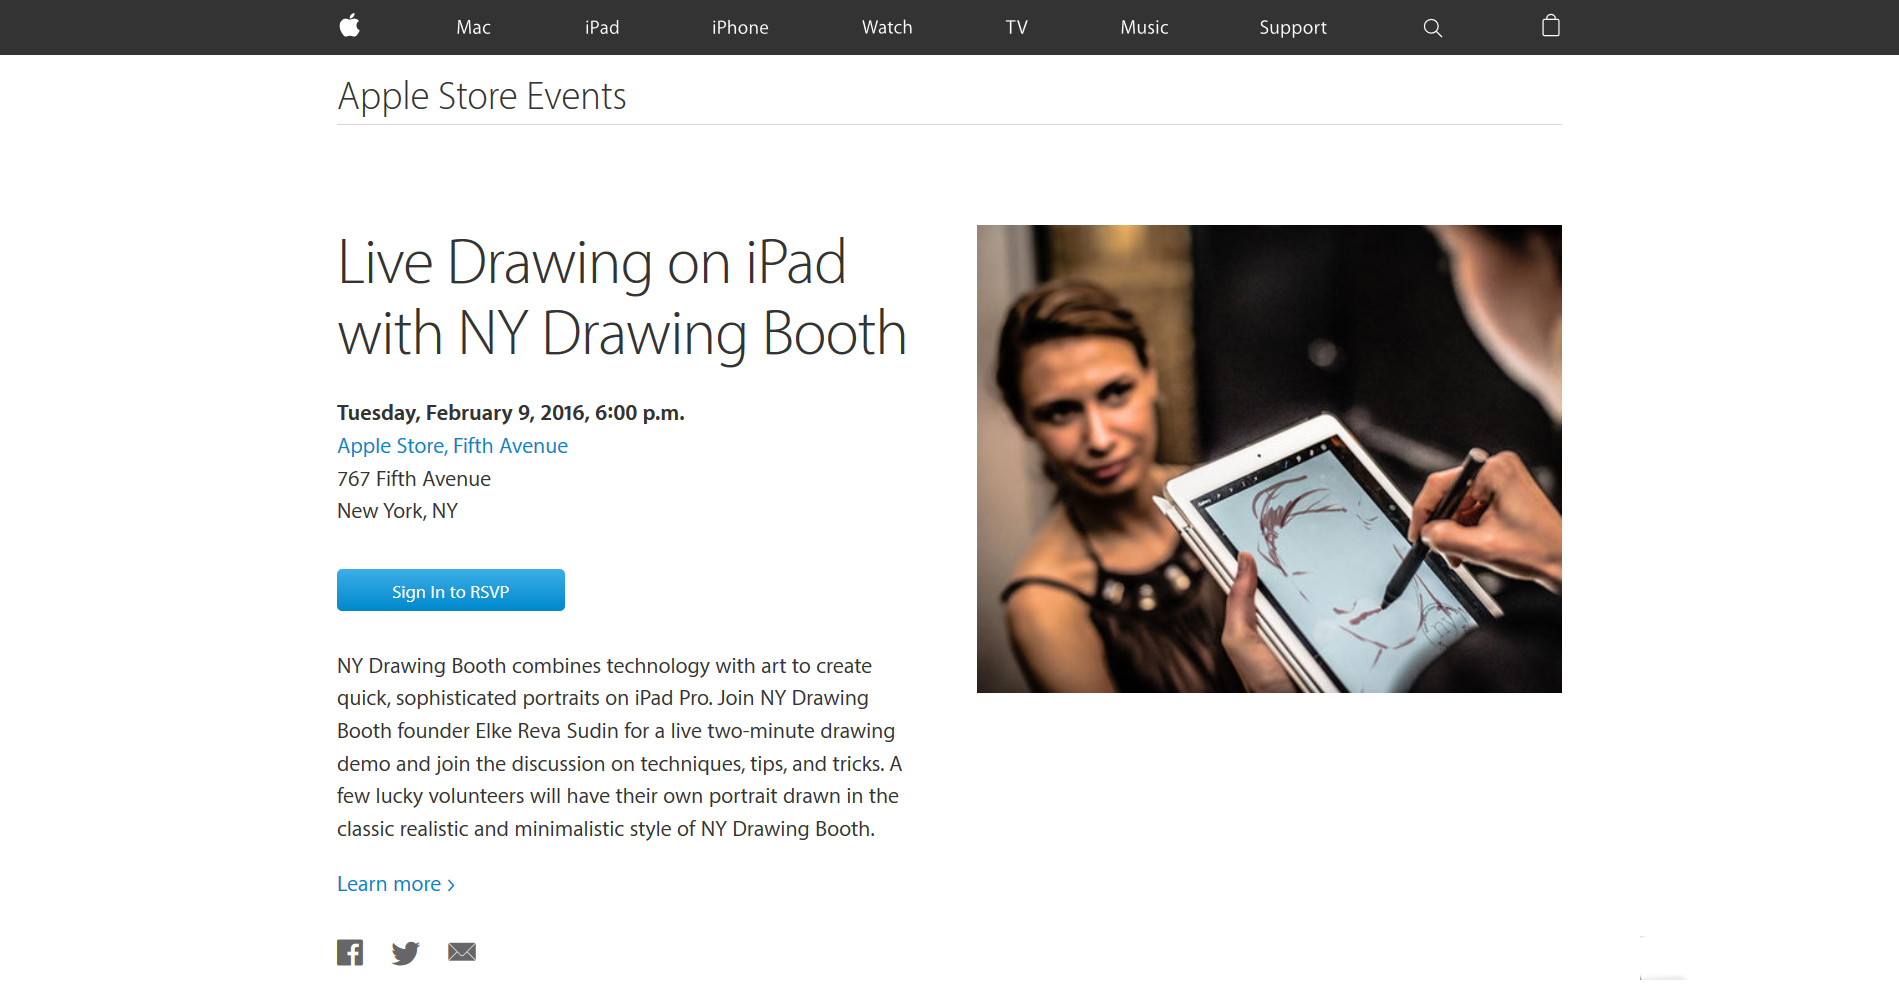 Live Drawing on iPad - Apple Store NY event